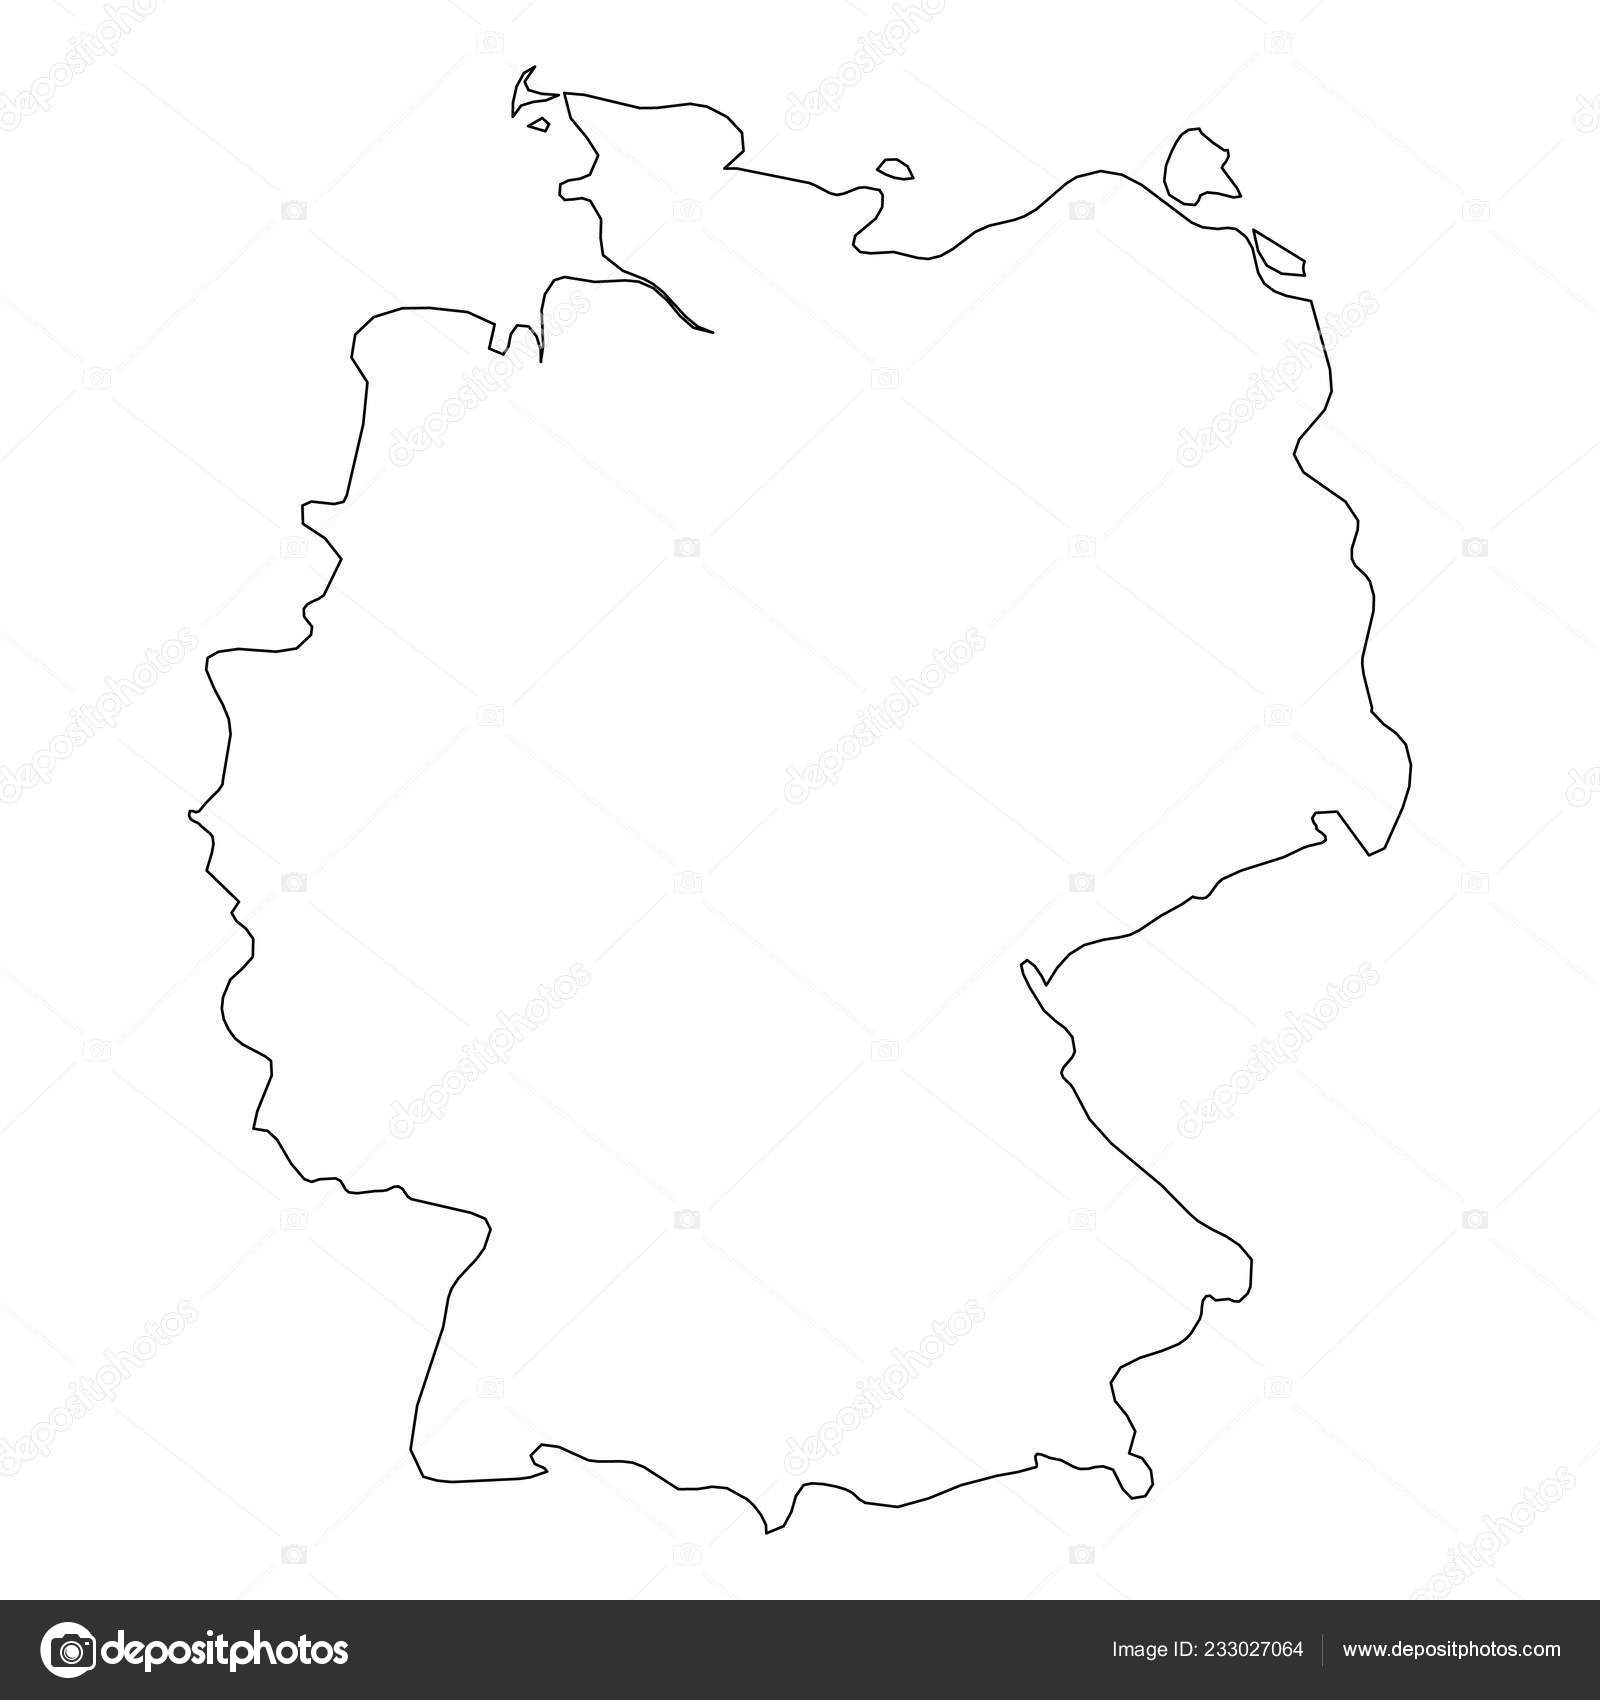 Germany Country Outline | Germany - Solid Black Outline Border Map in Germany Country Map Outline